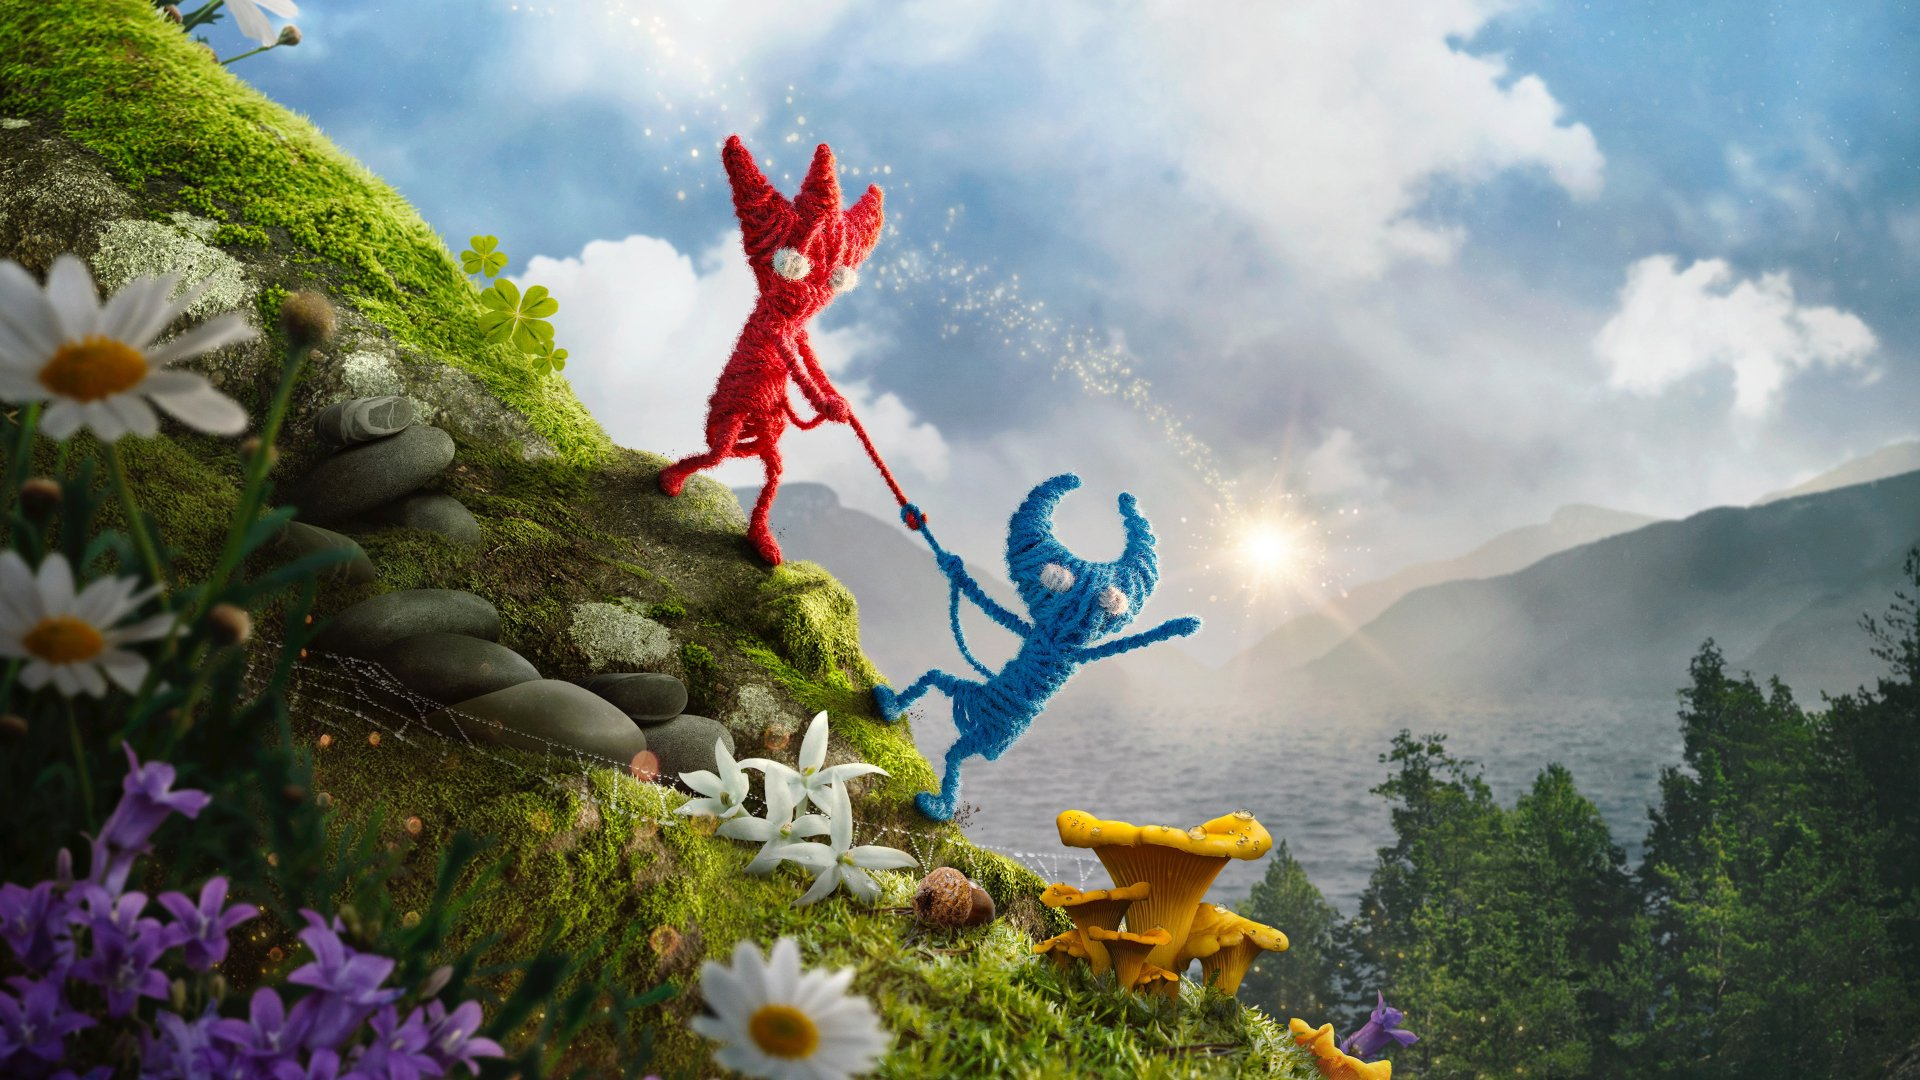 unravel 2 wallpaper 68856